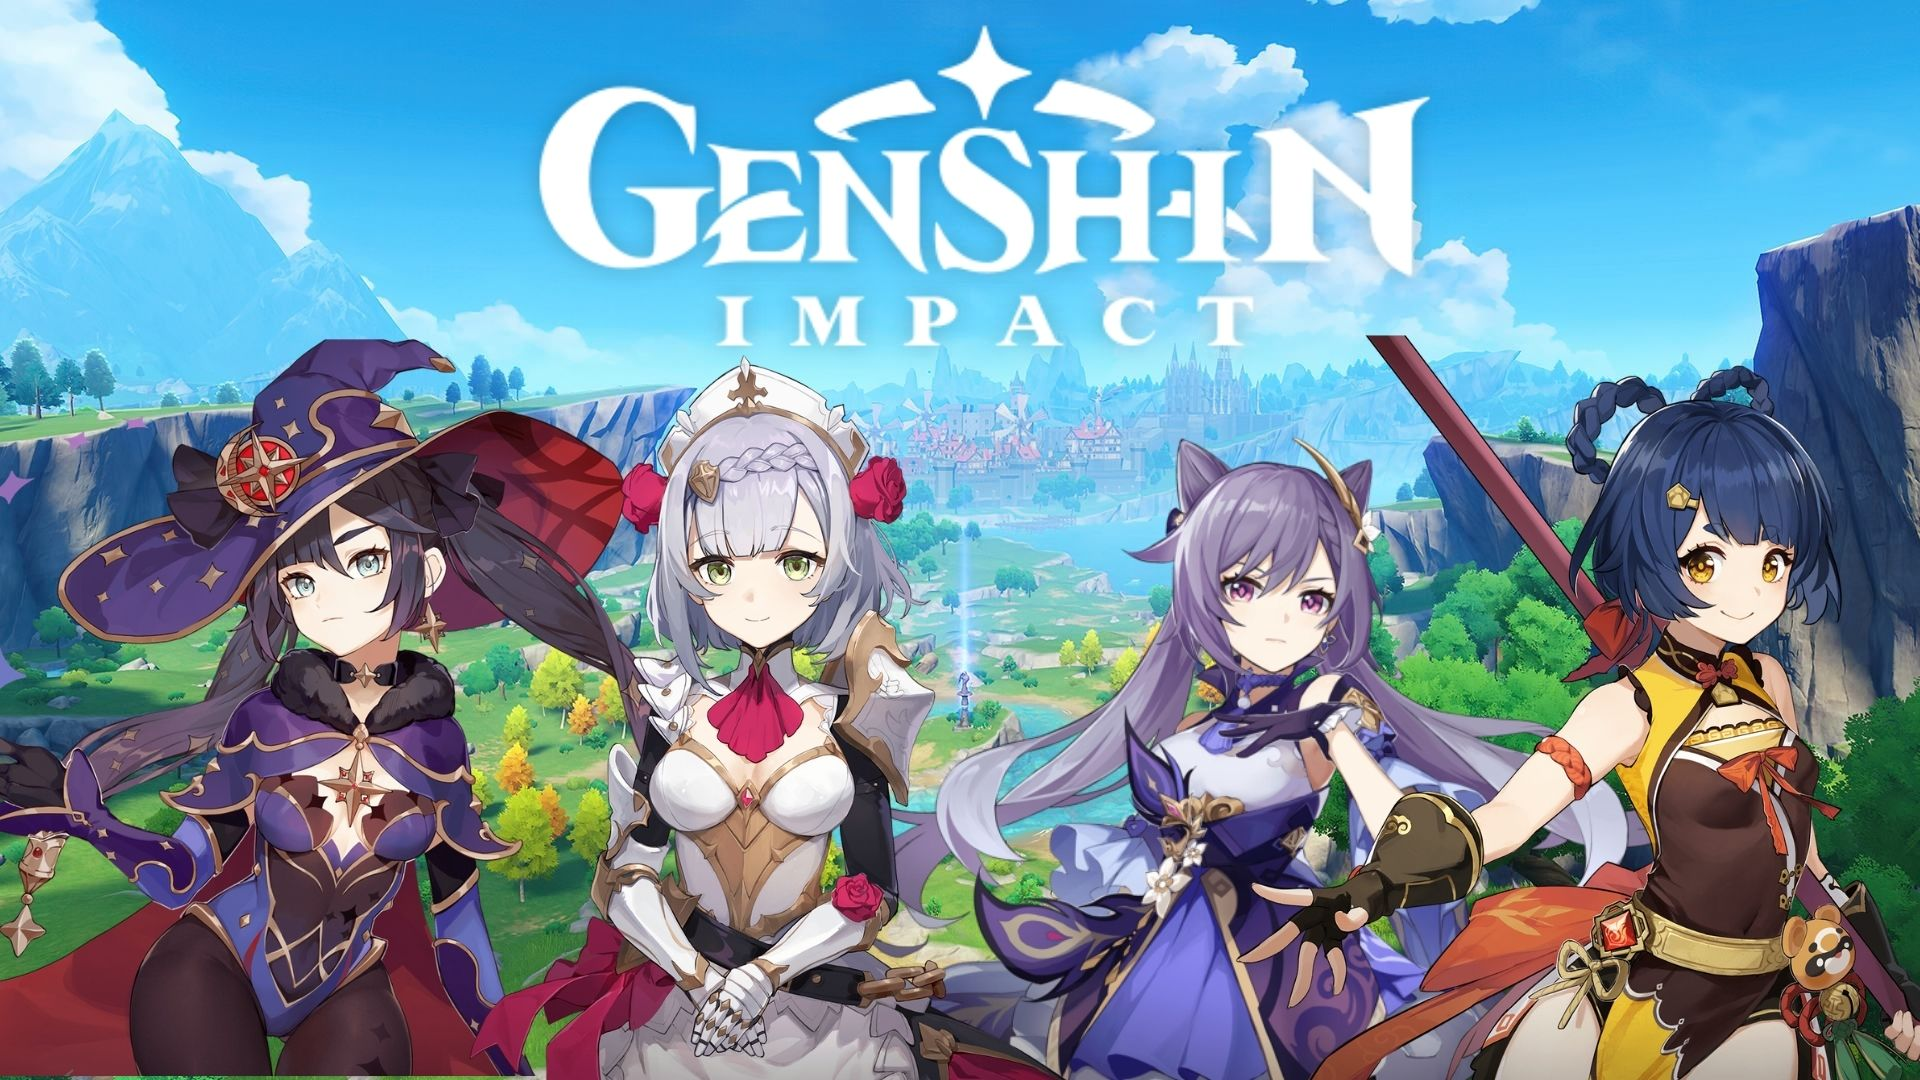 Genshin Impact characters next to the logo